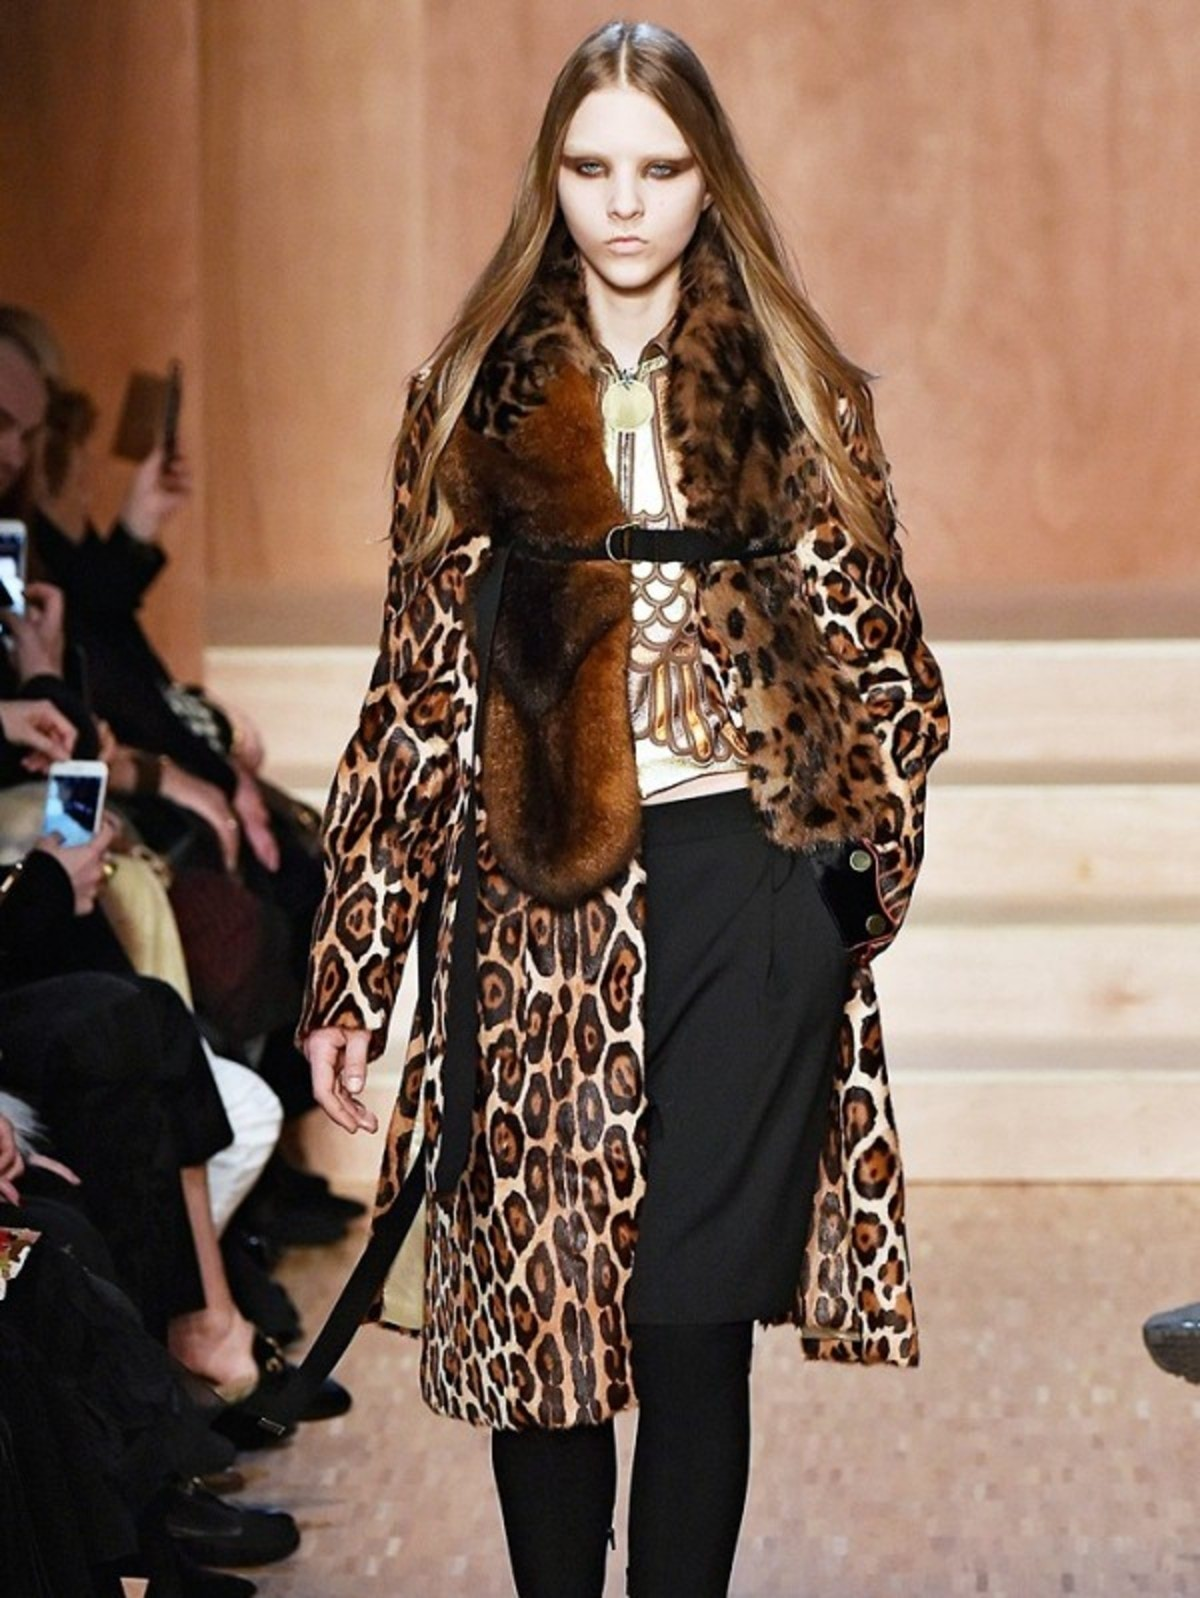 10-best-winter-coats-from-leopard-print-to-military-1856396-1470147551.600x0c